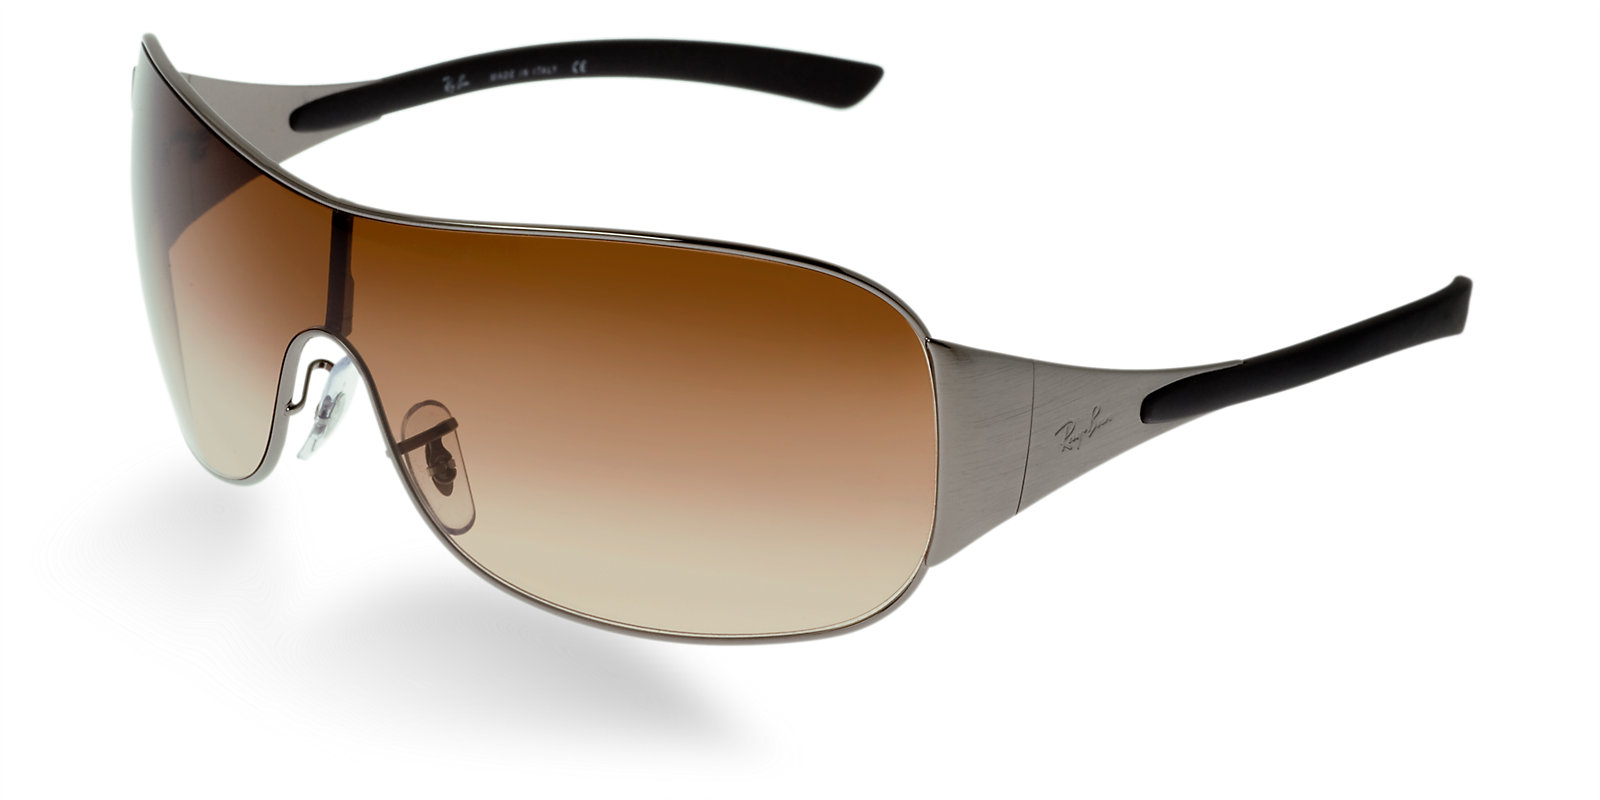 Sunglasses For Men Ray Ban  exclusive ray ban luxury sunglasses and goggles for men